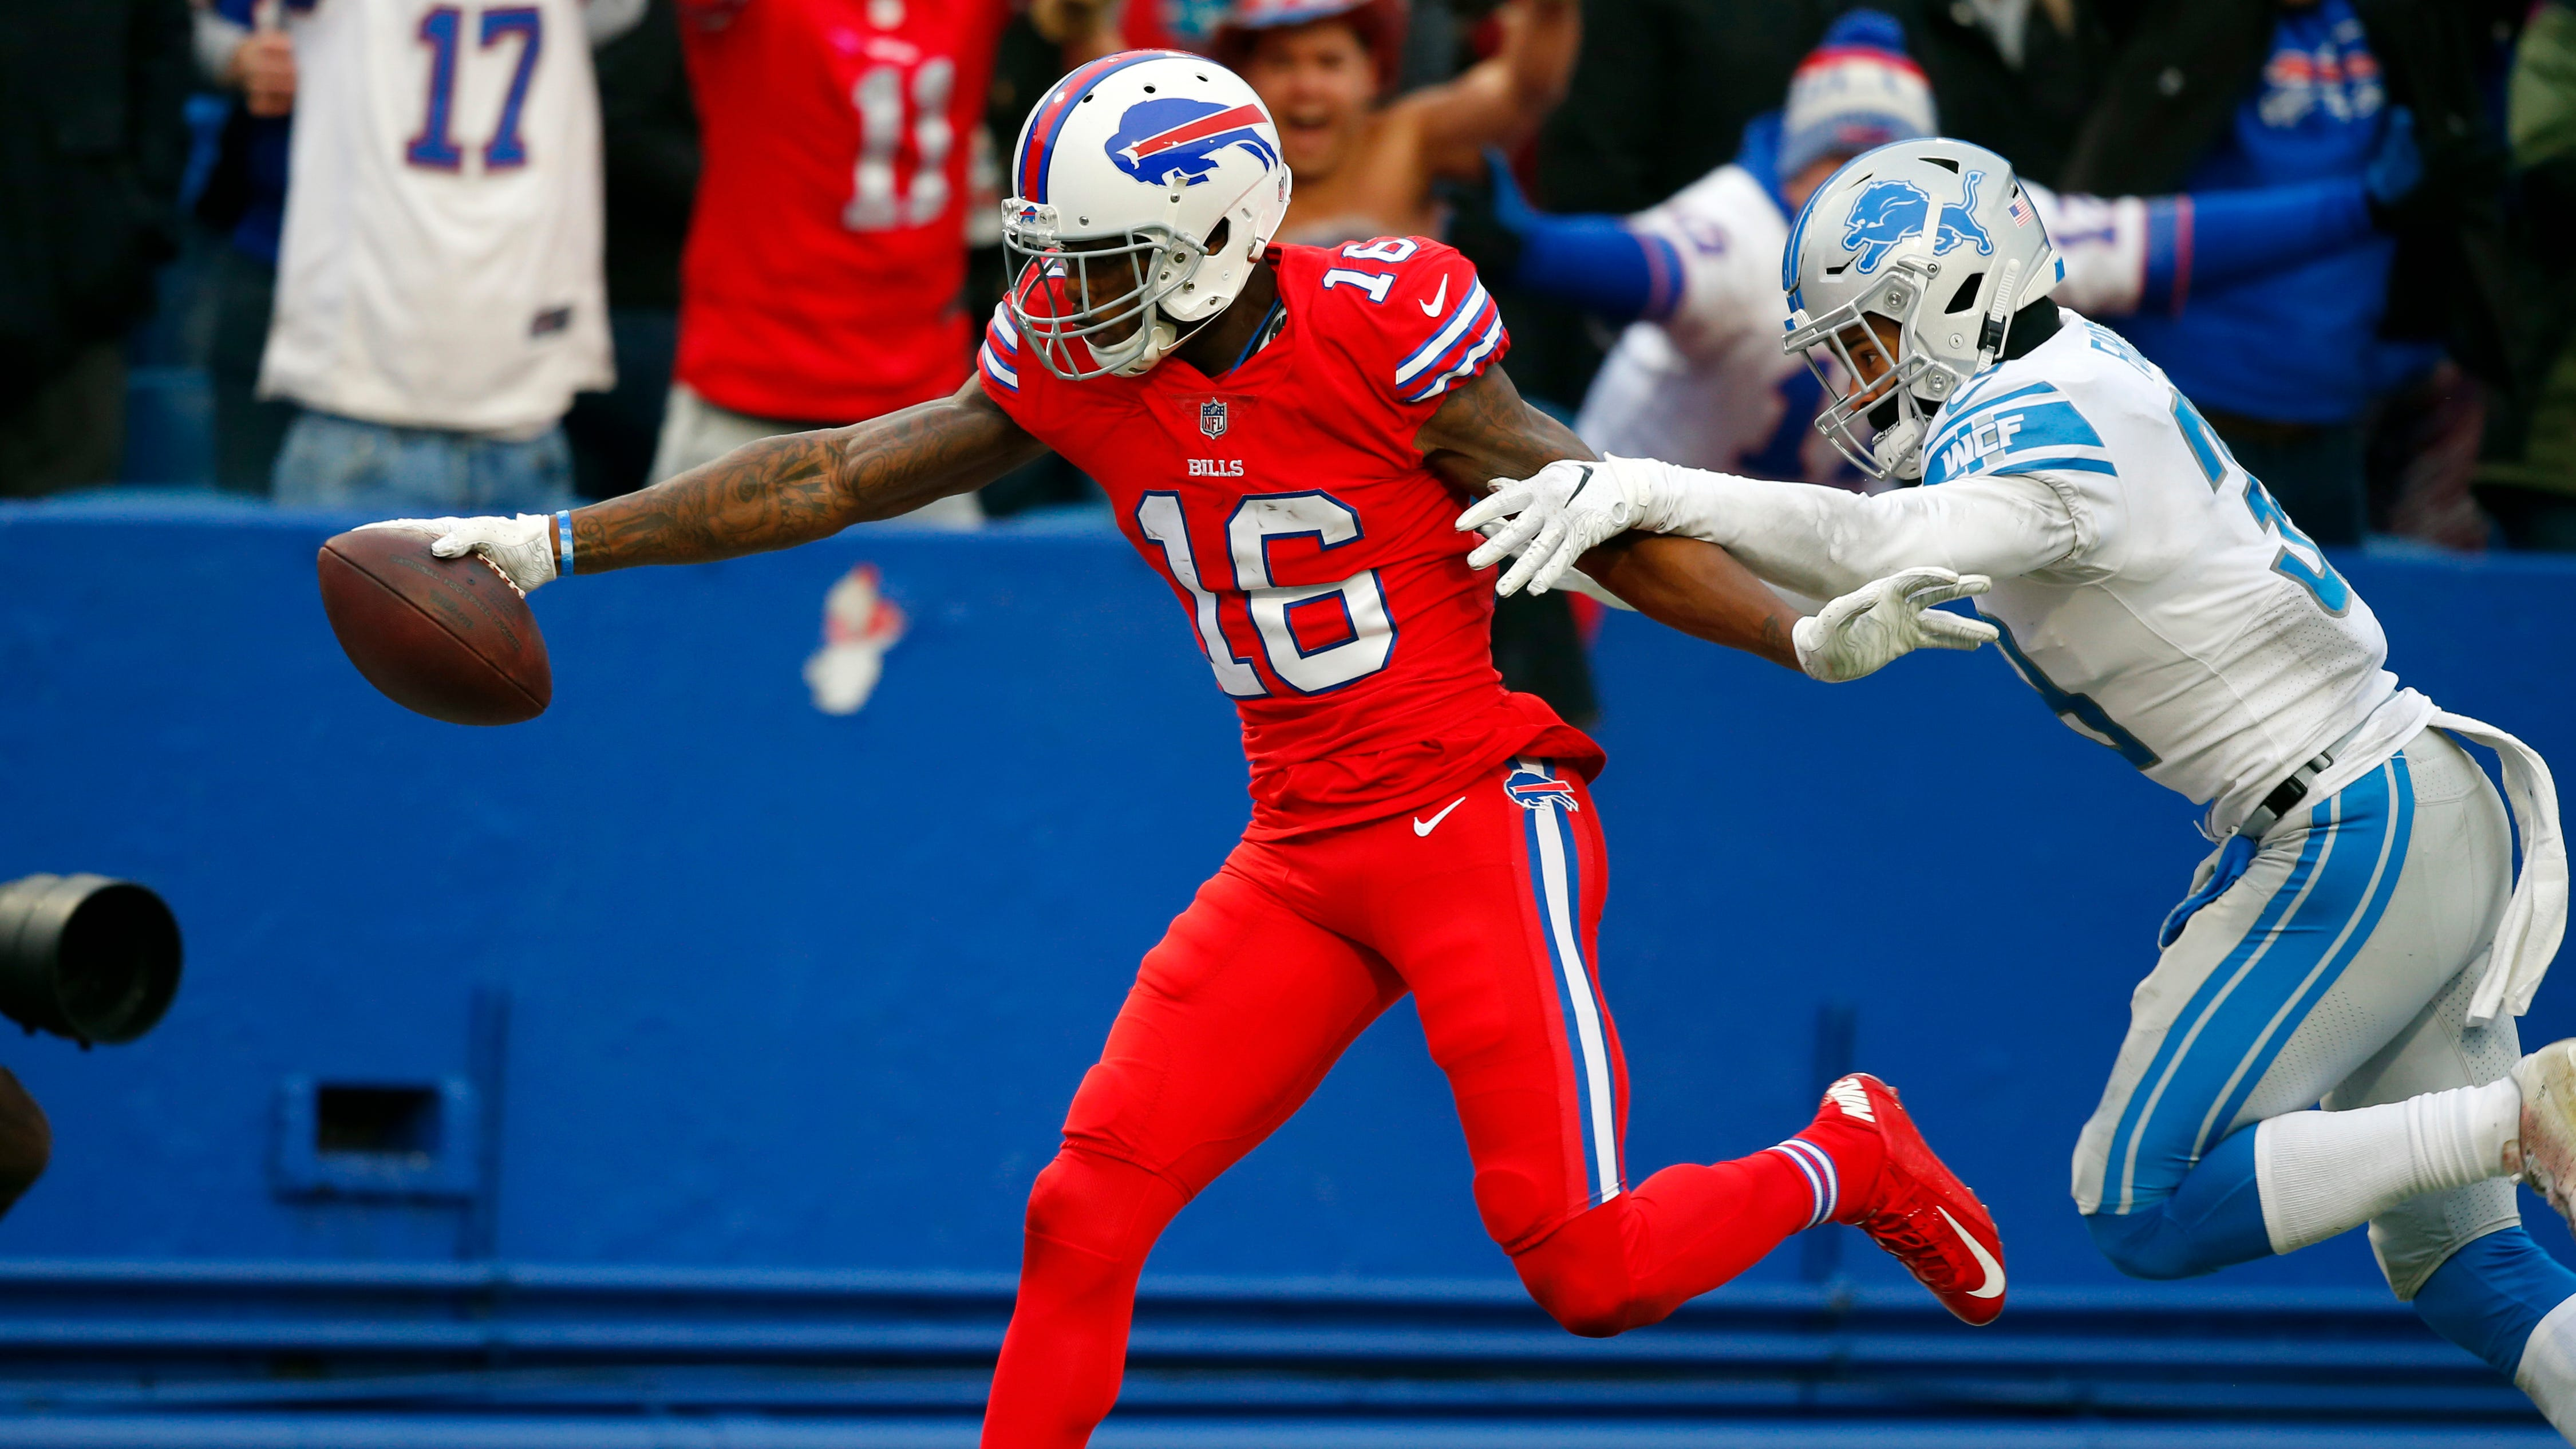 Bills rookie wide receiver Robert Foster (16) scores a 42-yard touchdown as Lions rookie defensive back Mike Ford (38) can't make the tackle Sunday in Orchard Park, N.Y.